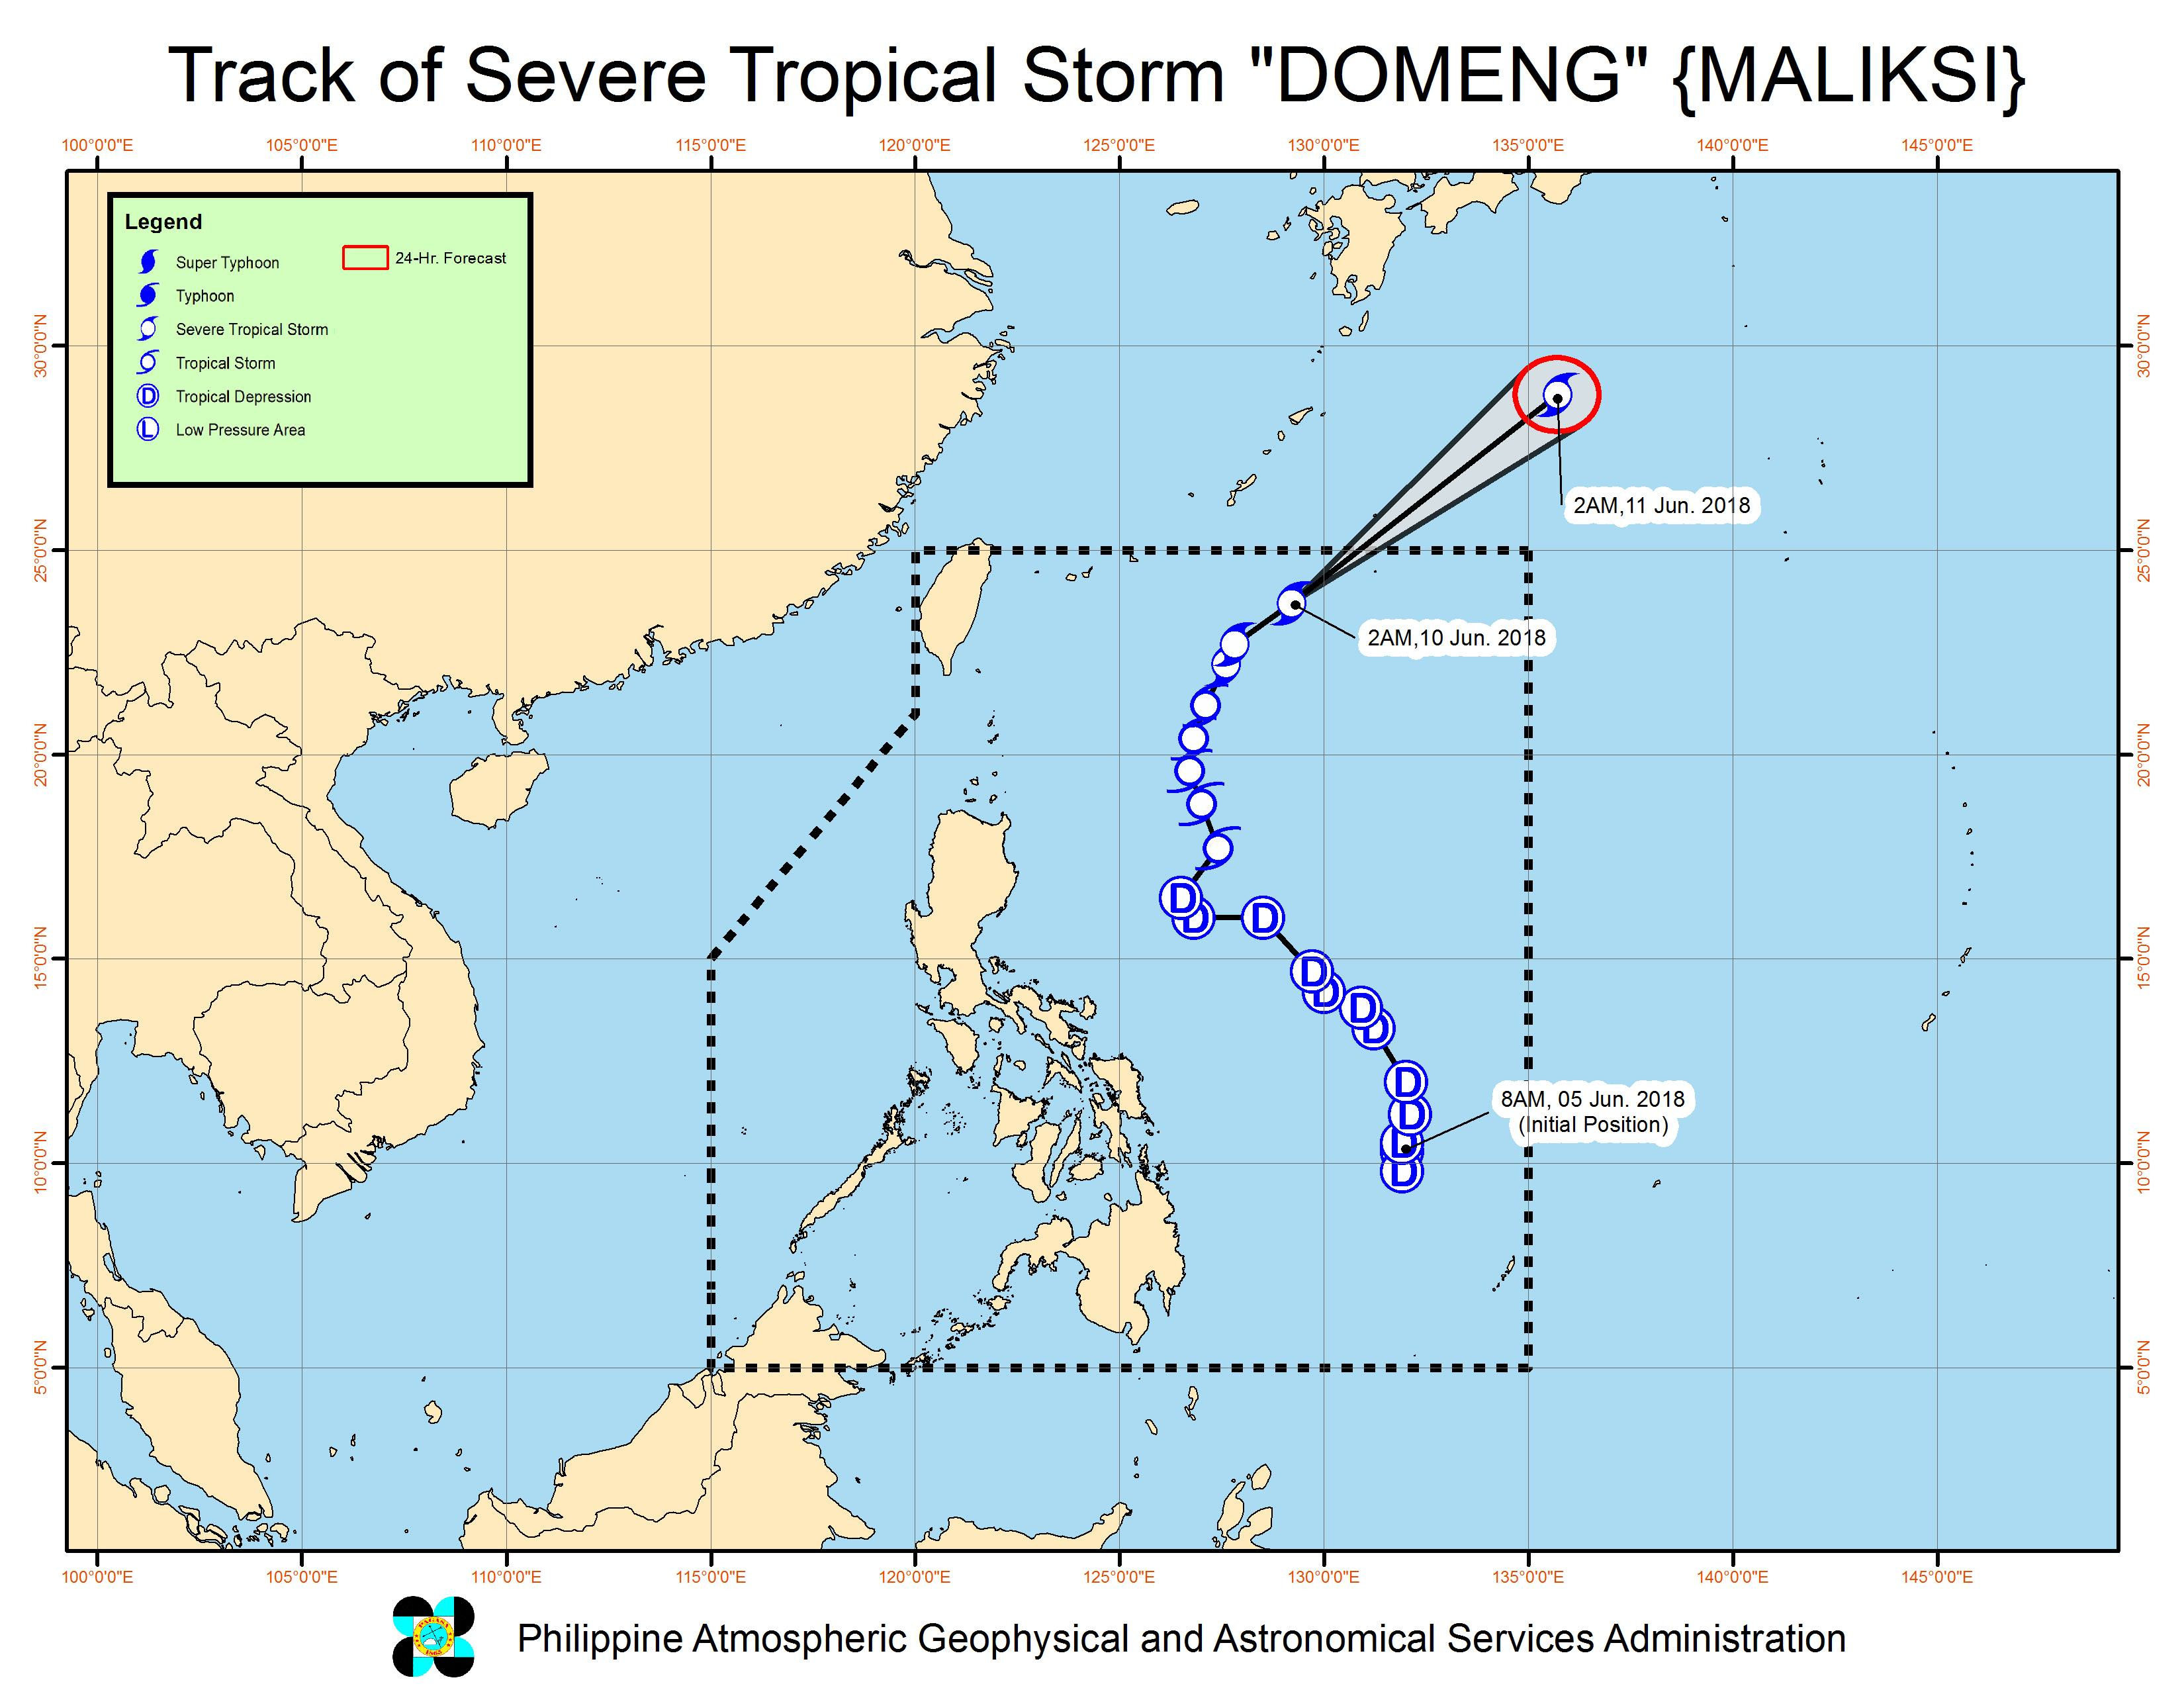 Forecast track of Severe Tropical Storm Domeng (Maliksi) as of June 10, 2018, 4 am. Image courtesy of PAGASA